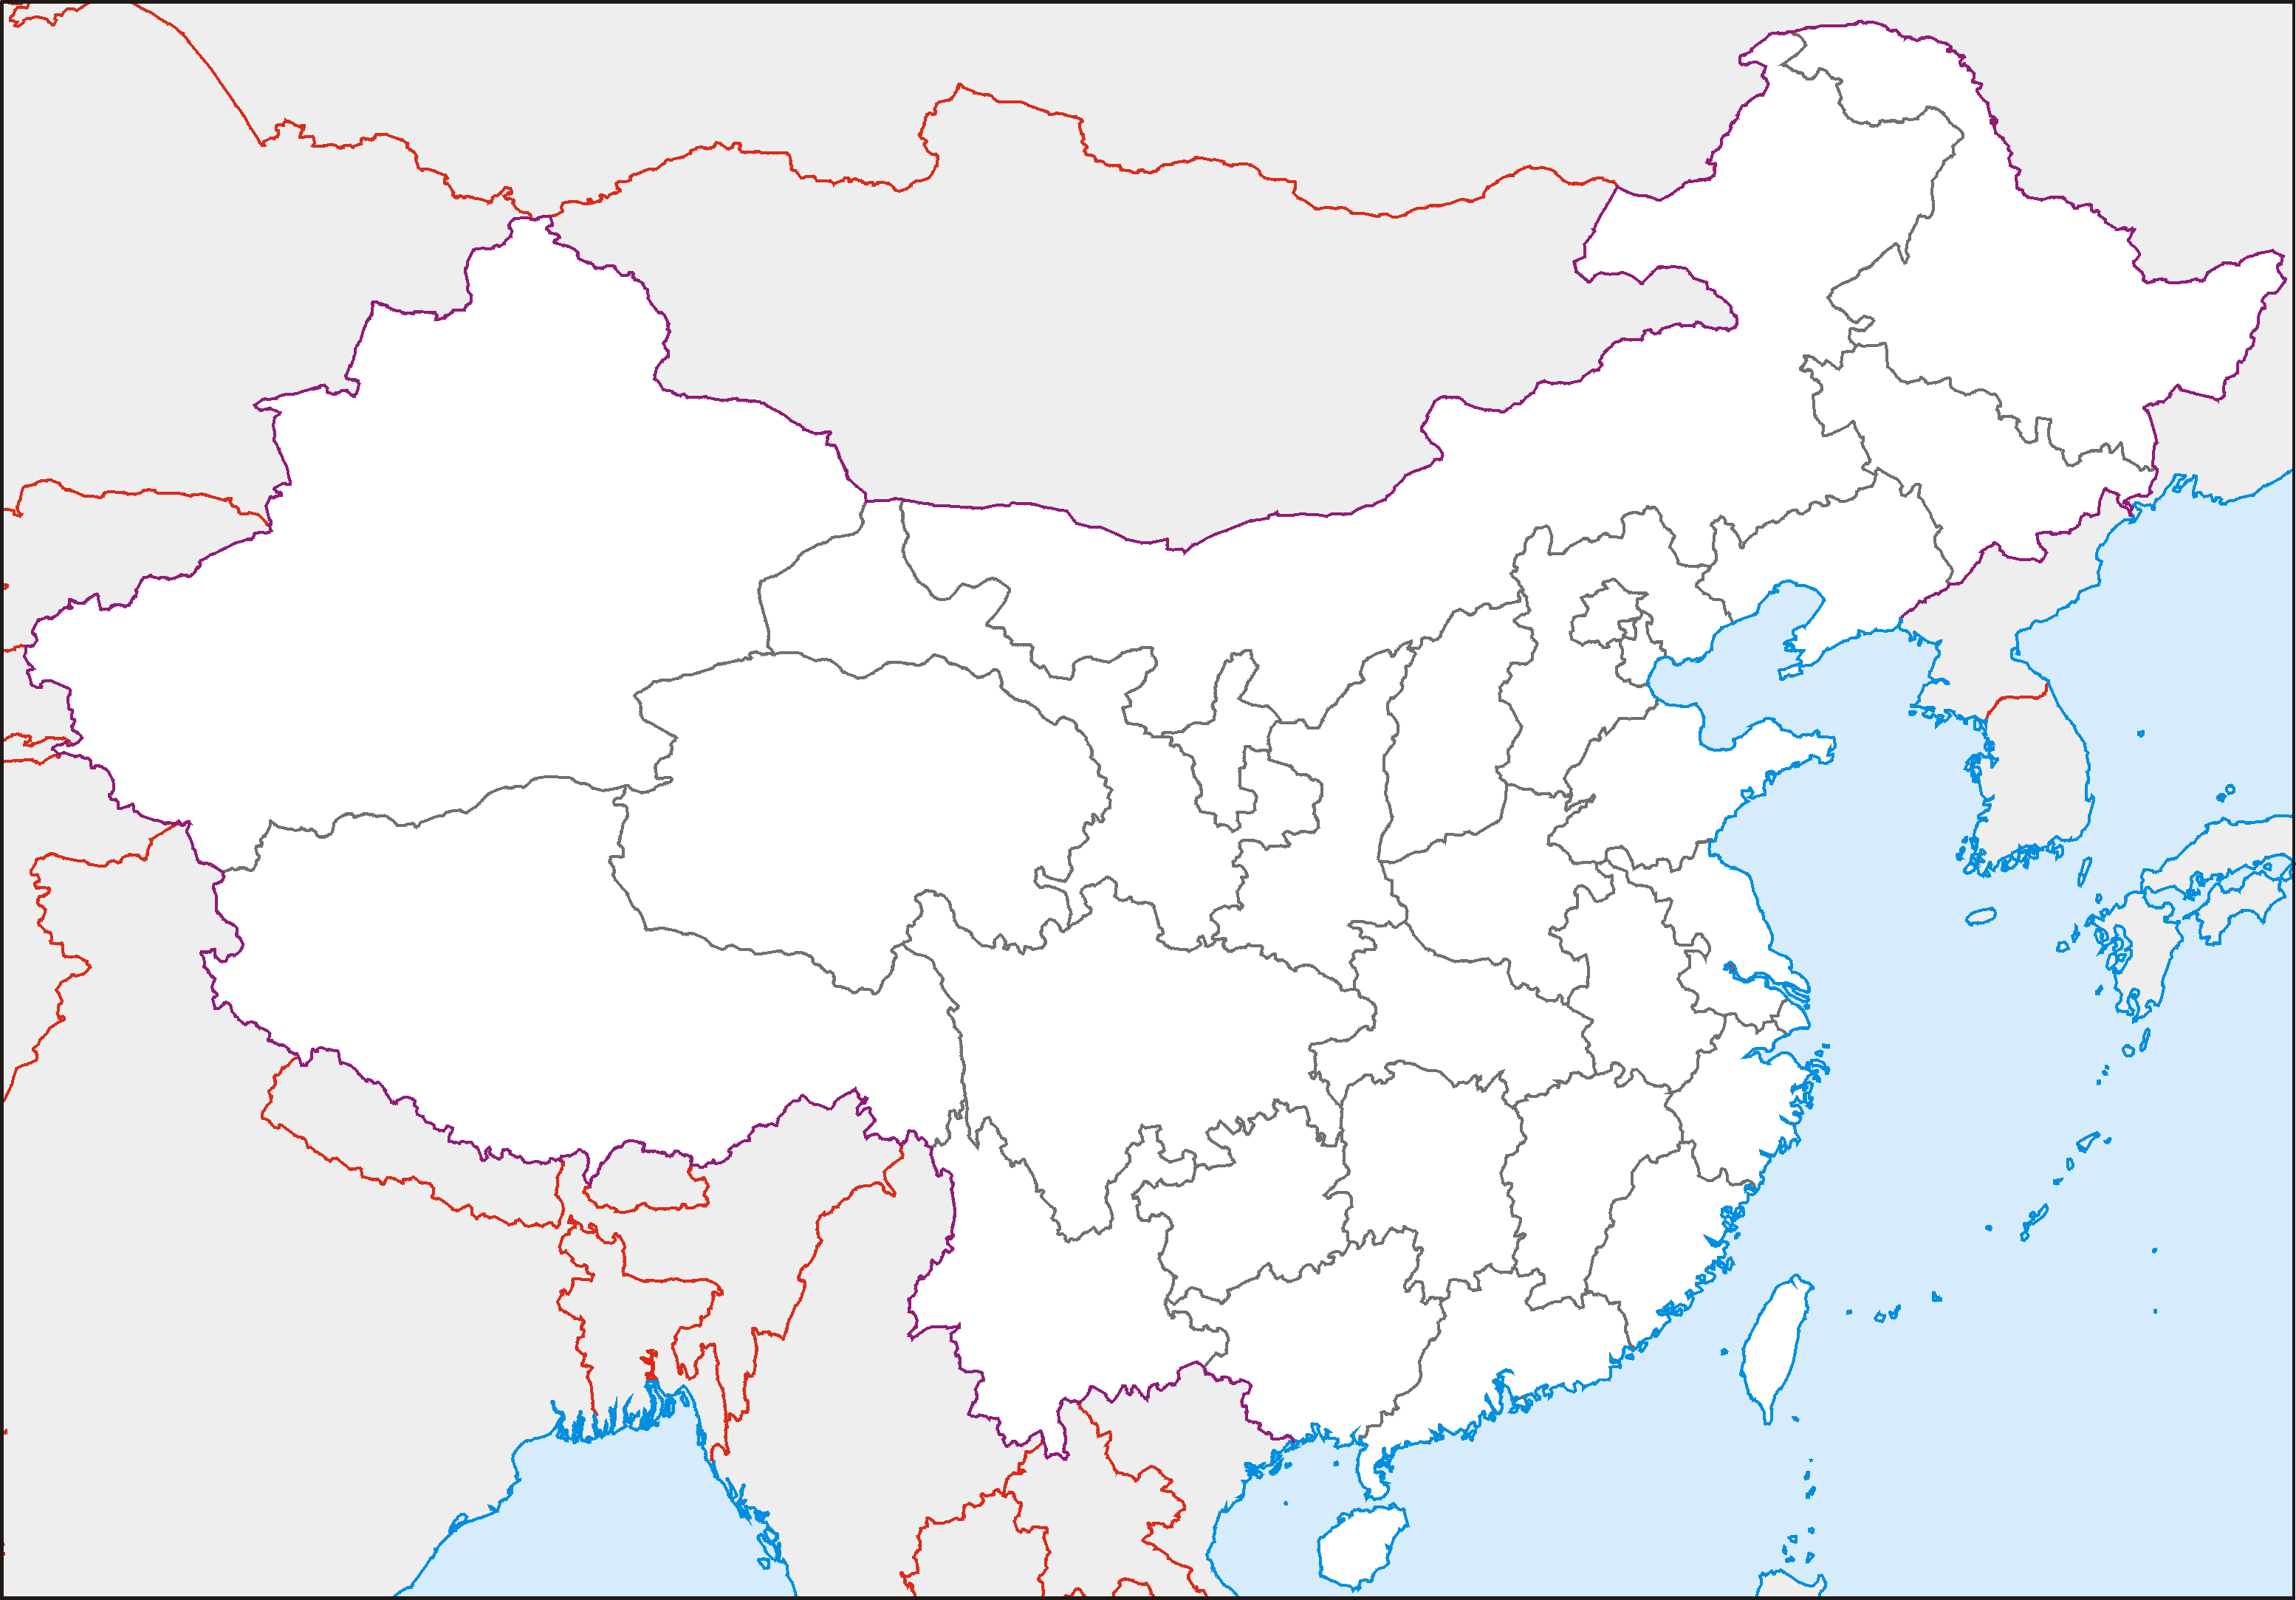 Case study 1: China - Geography from KS3 to IB